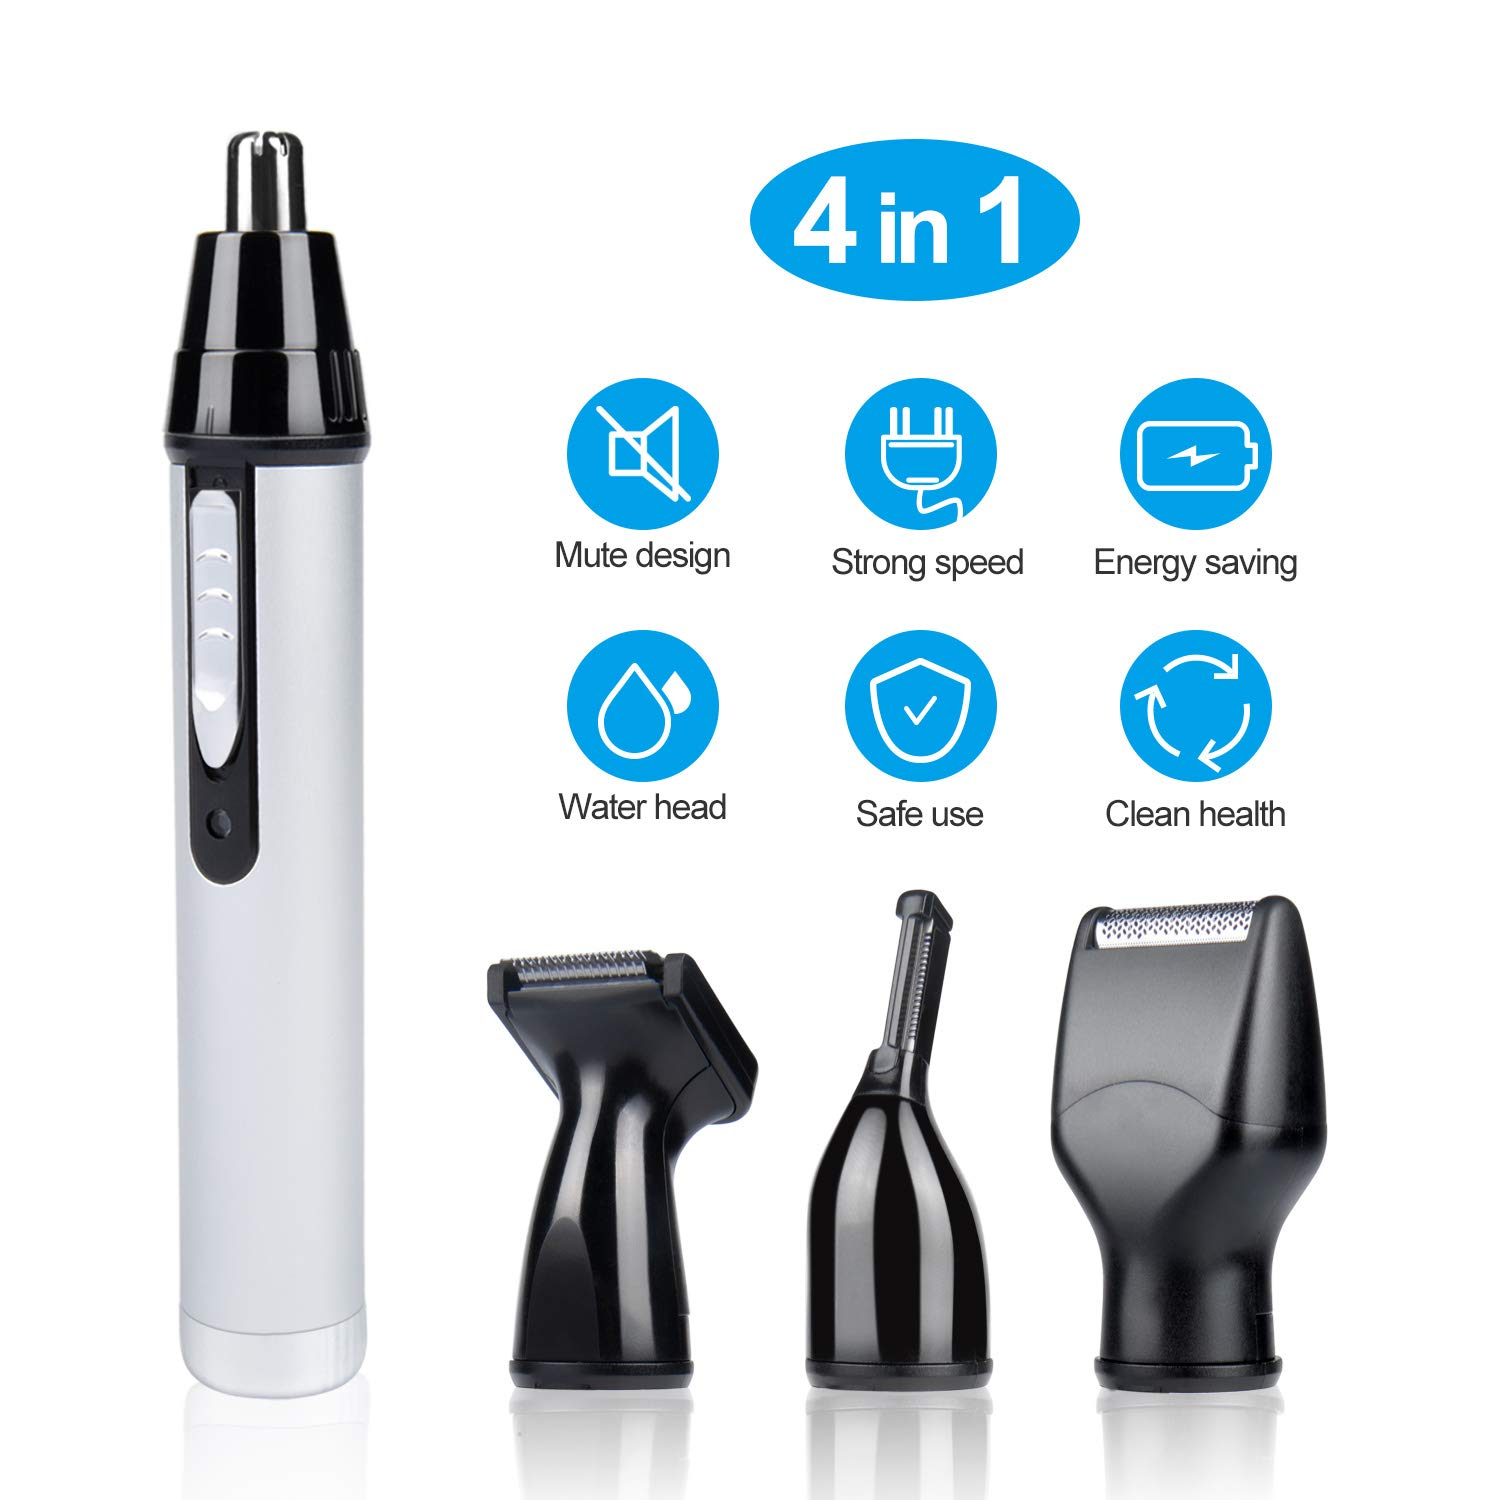 Ear and Nose Hair Trimmer for Men, Vibeey Waterproof 4 in 1 Professional USB Rechargeable Beard Trimmer, Electric Hair Clipper for Men Women